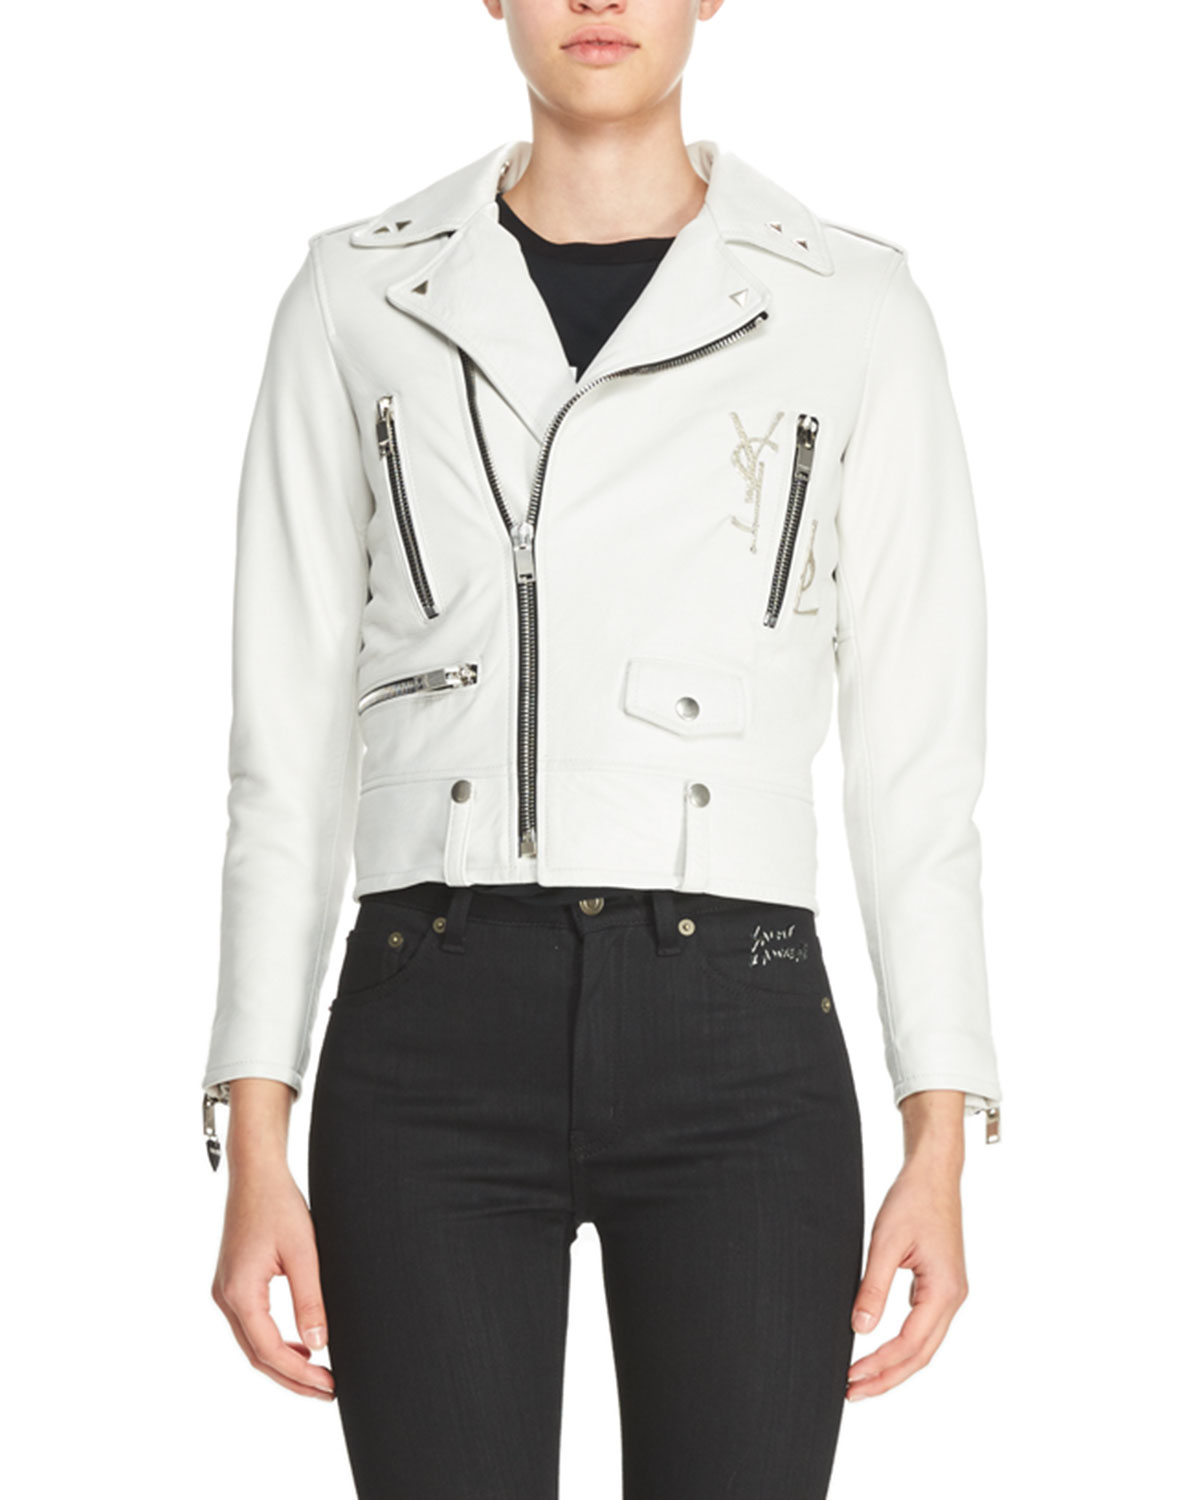 f9a7e4af8 L01 Leather Motorcycle Jacket with Deconstructed Logo, White